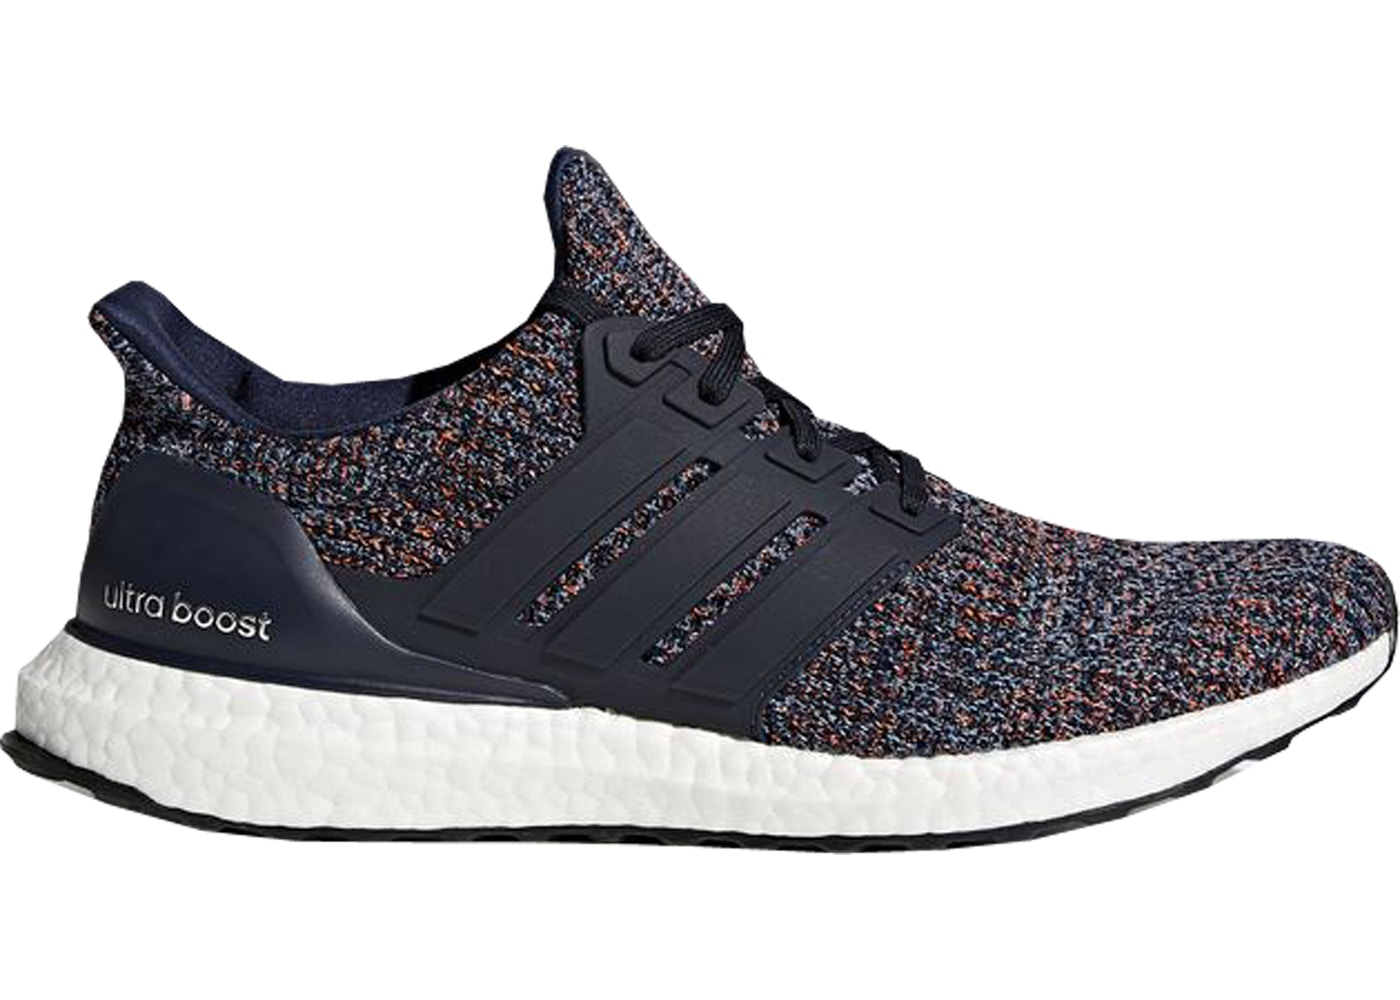 Adidas UltraBoost 4.0 'Ash Pearl' Size 8.5 Low Top Sneakers for